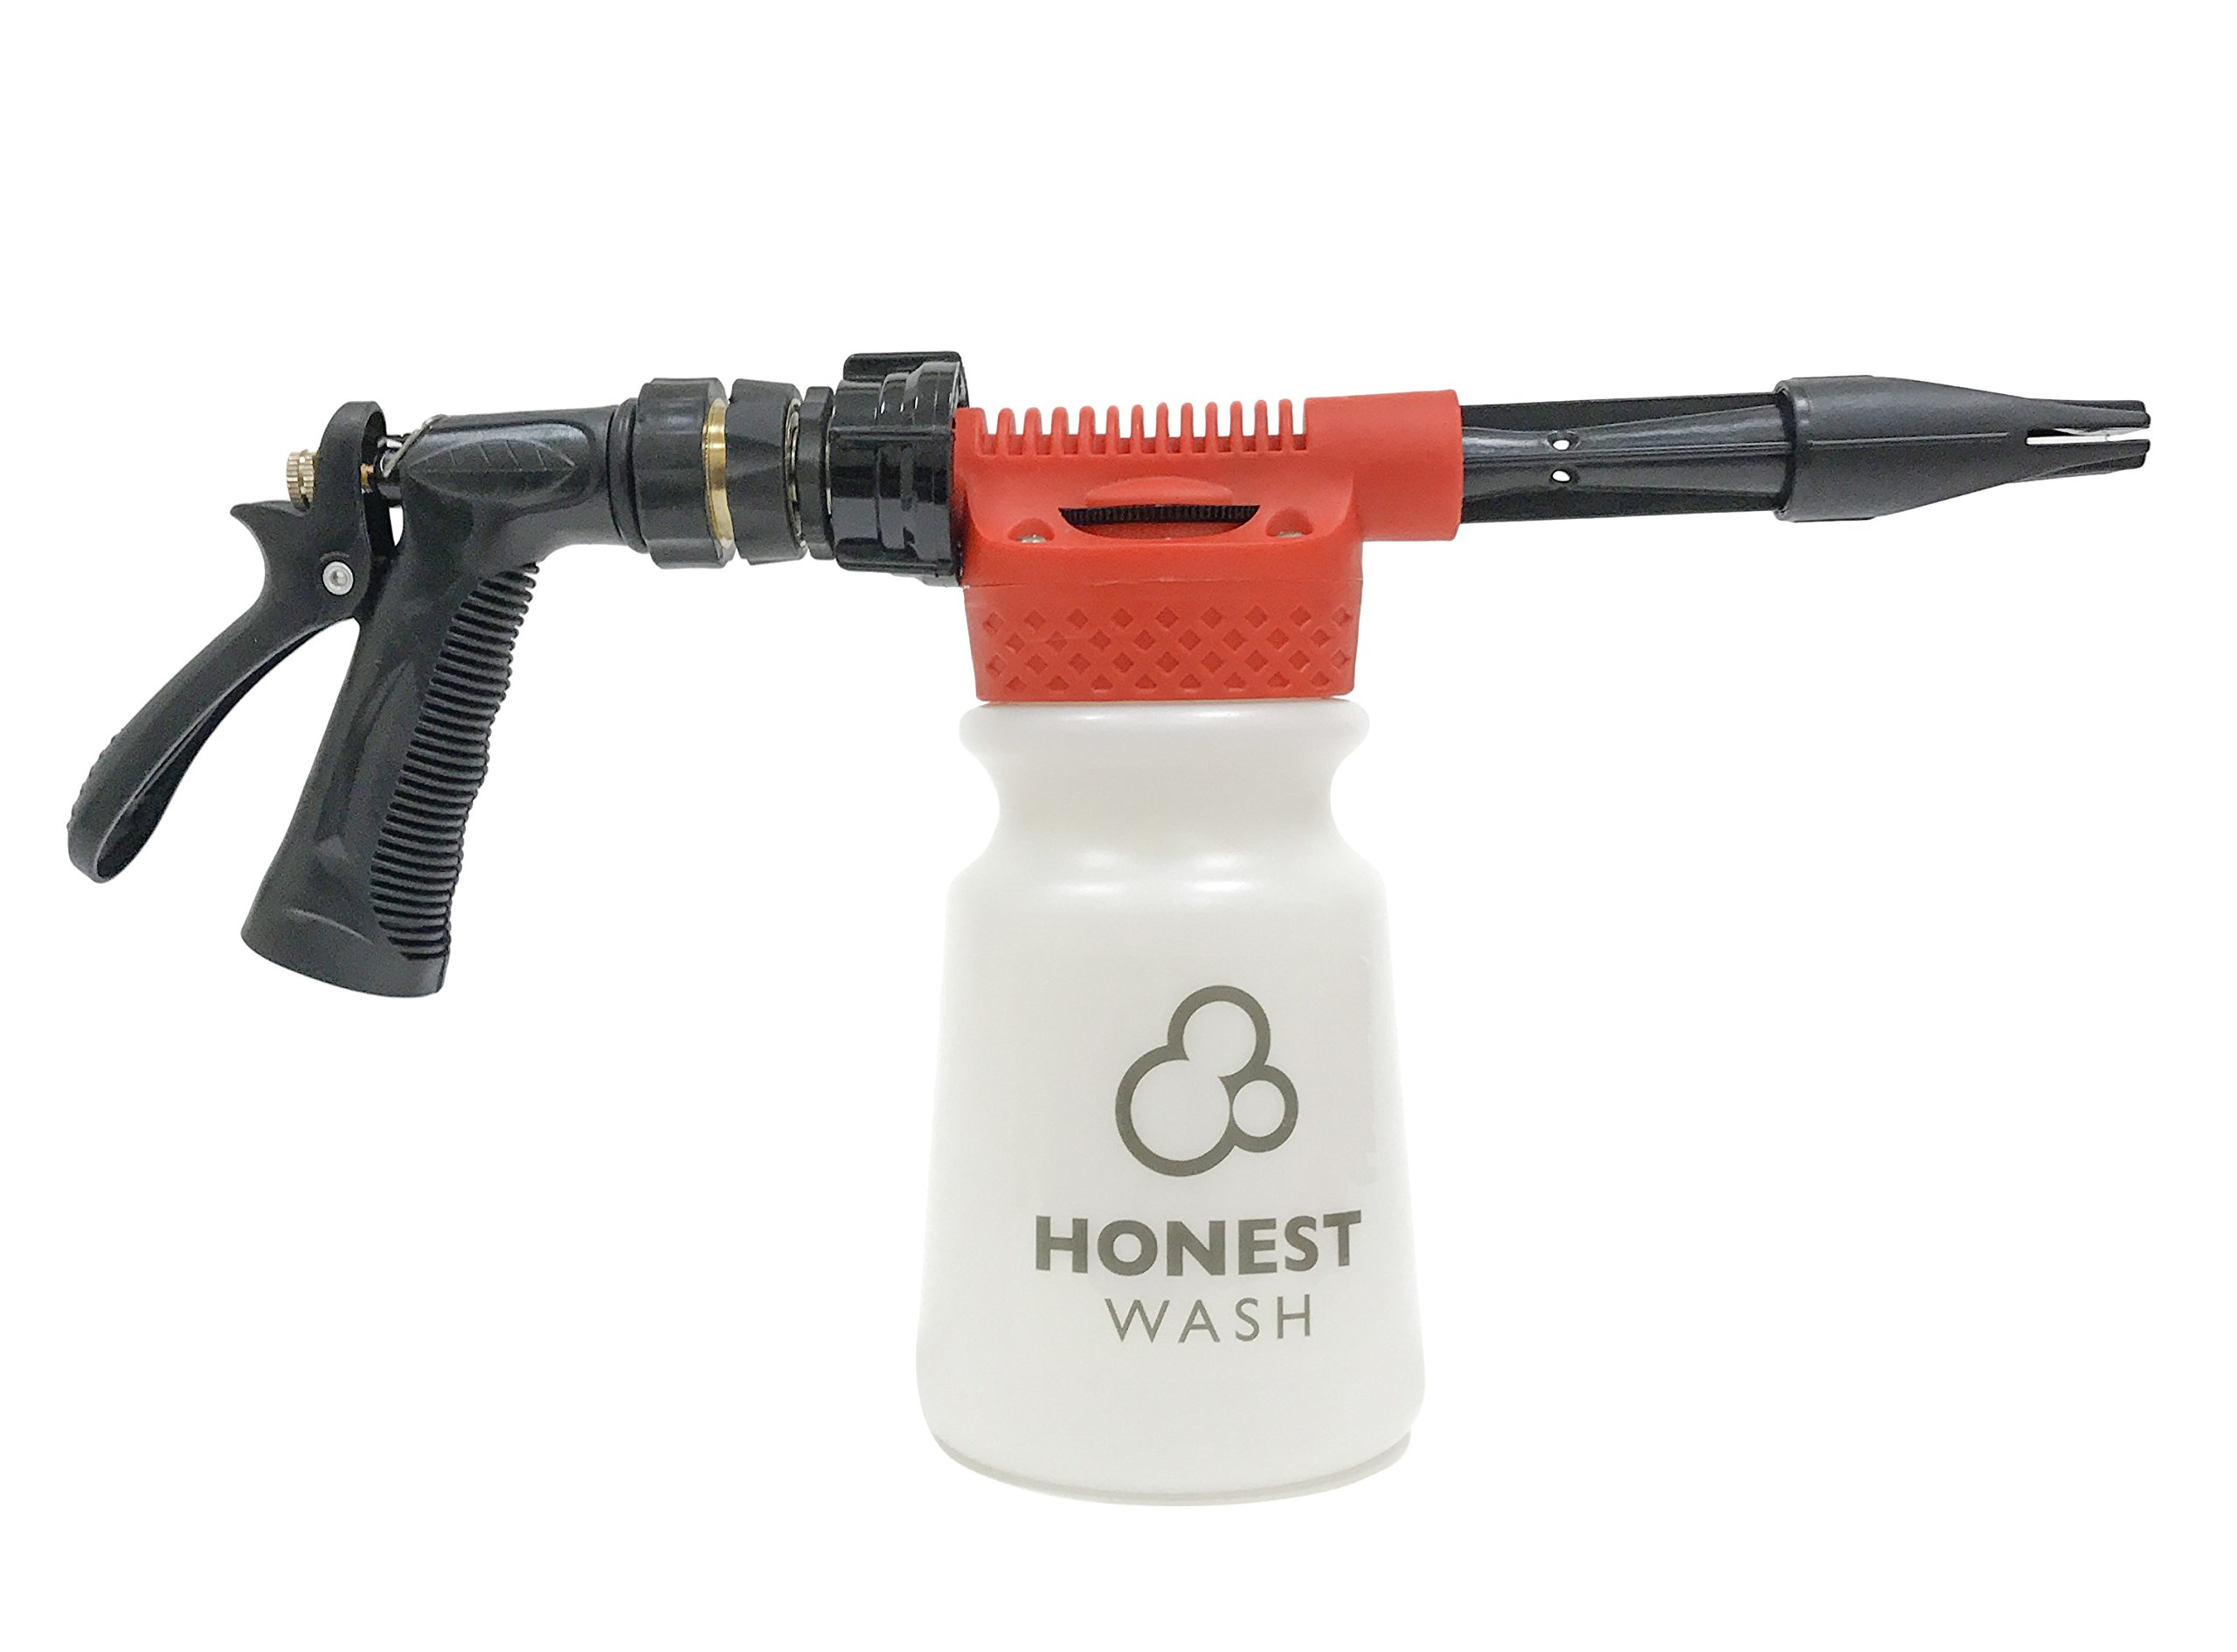 Honest Wash Car Care Foam Sprayer, Foam Gun – Foamaster, Foam Blaster – Perfect for Washing Car, Truck, Boat– Produces Thick Car Wash Snow Foam – Connects to any Hose - No Pressure Washer Needed